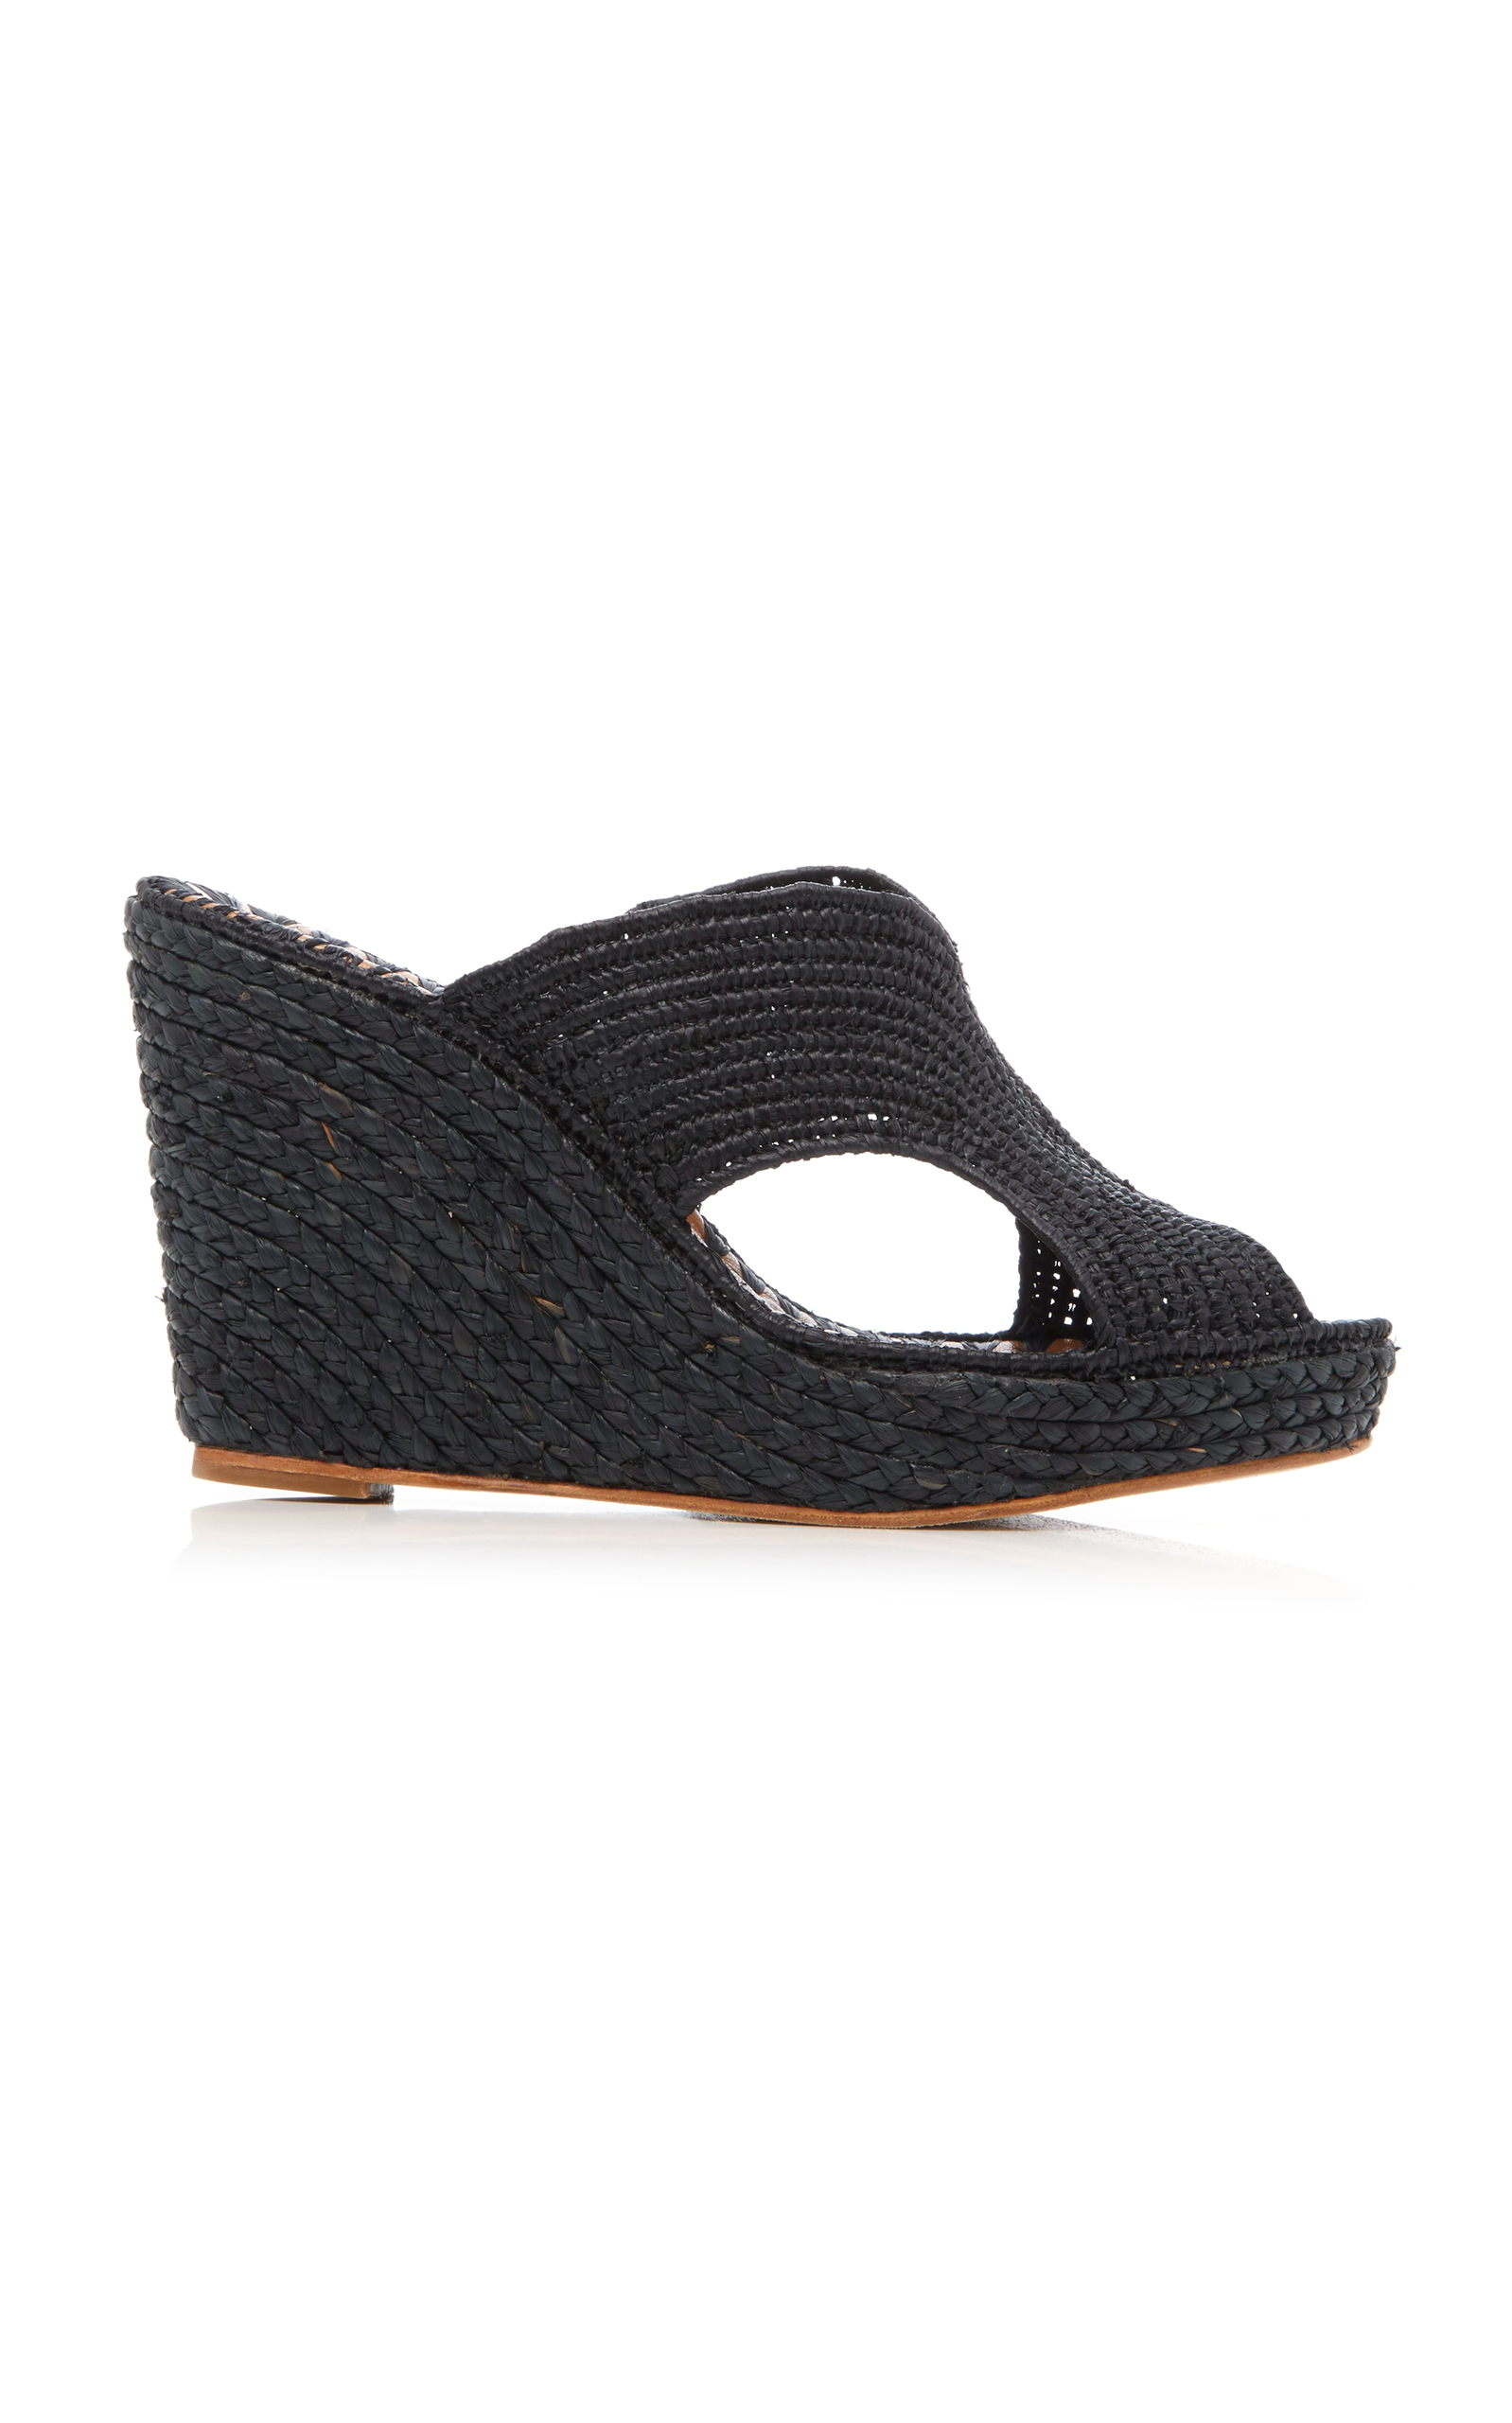 Carrie Forbes Lina Raffia Wedge Slides